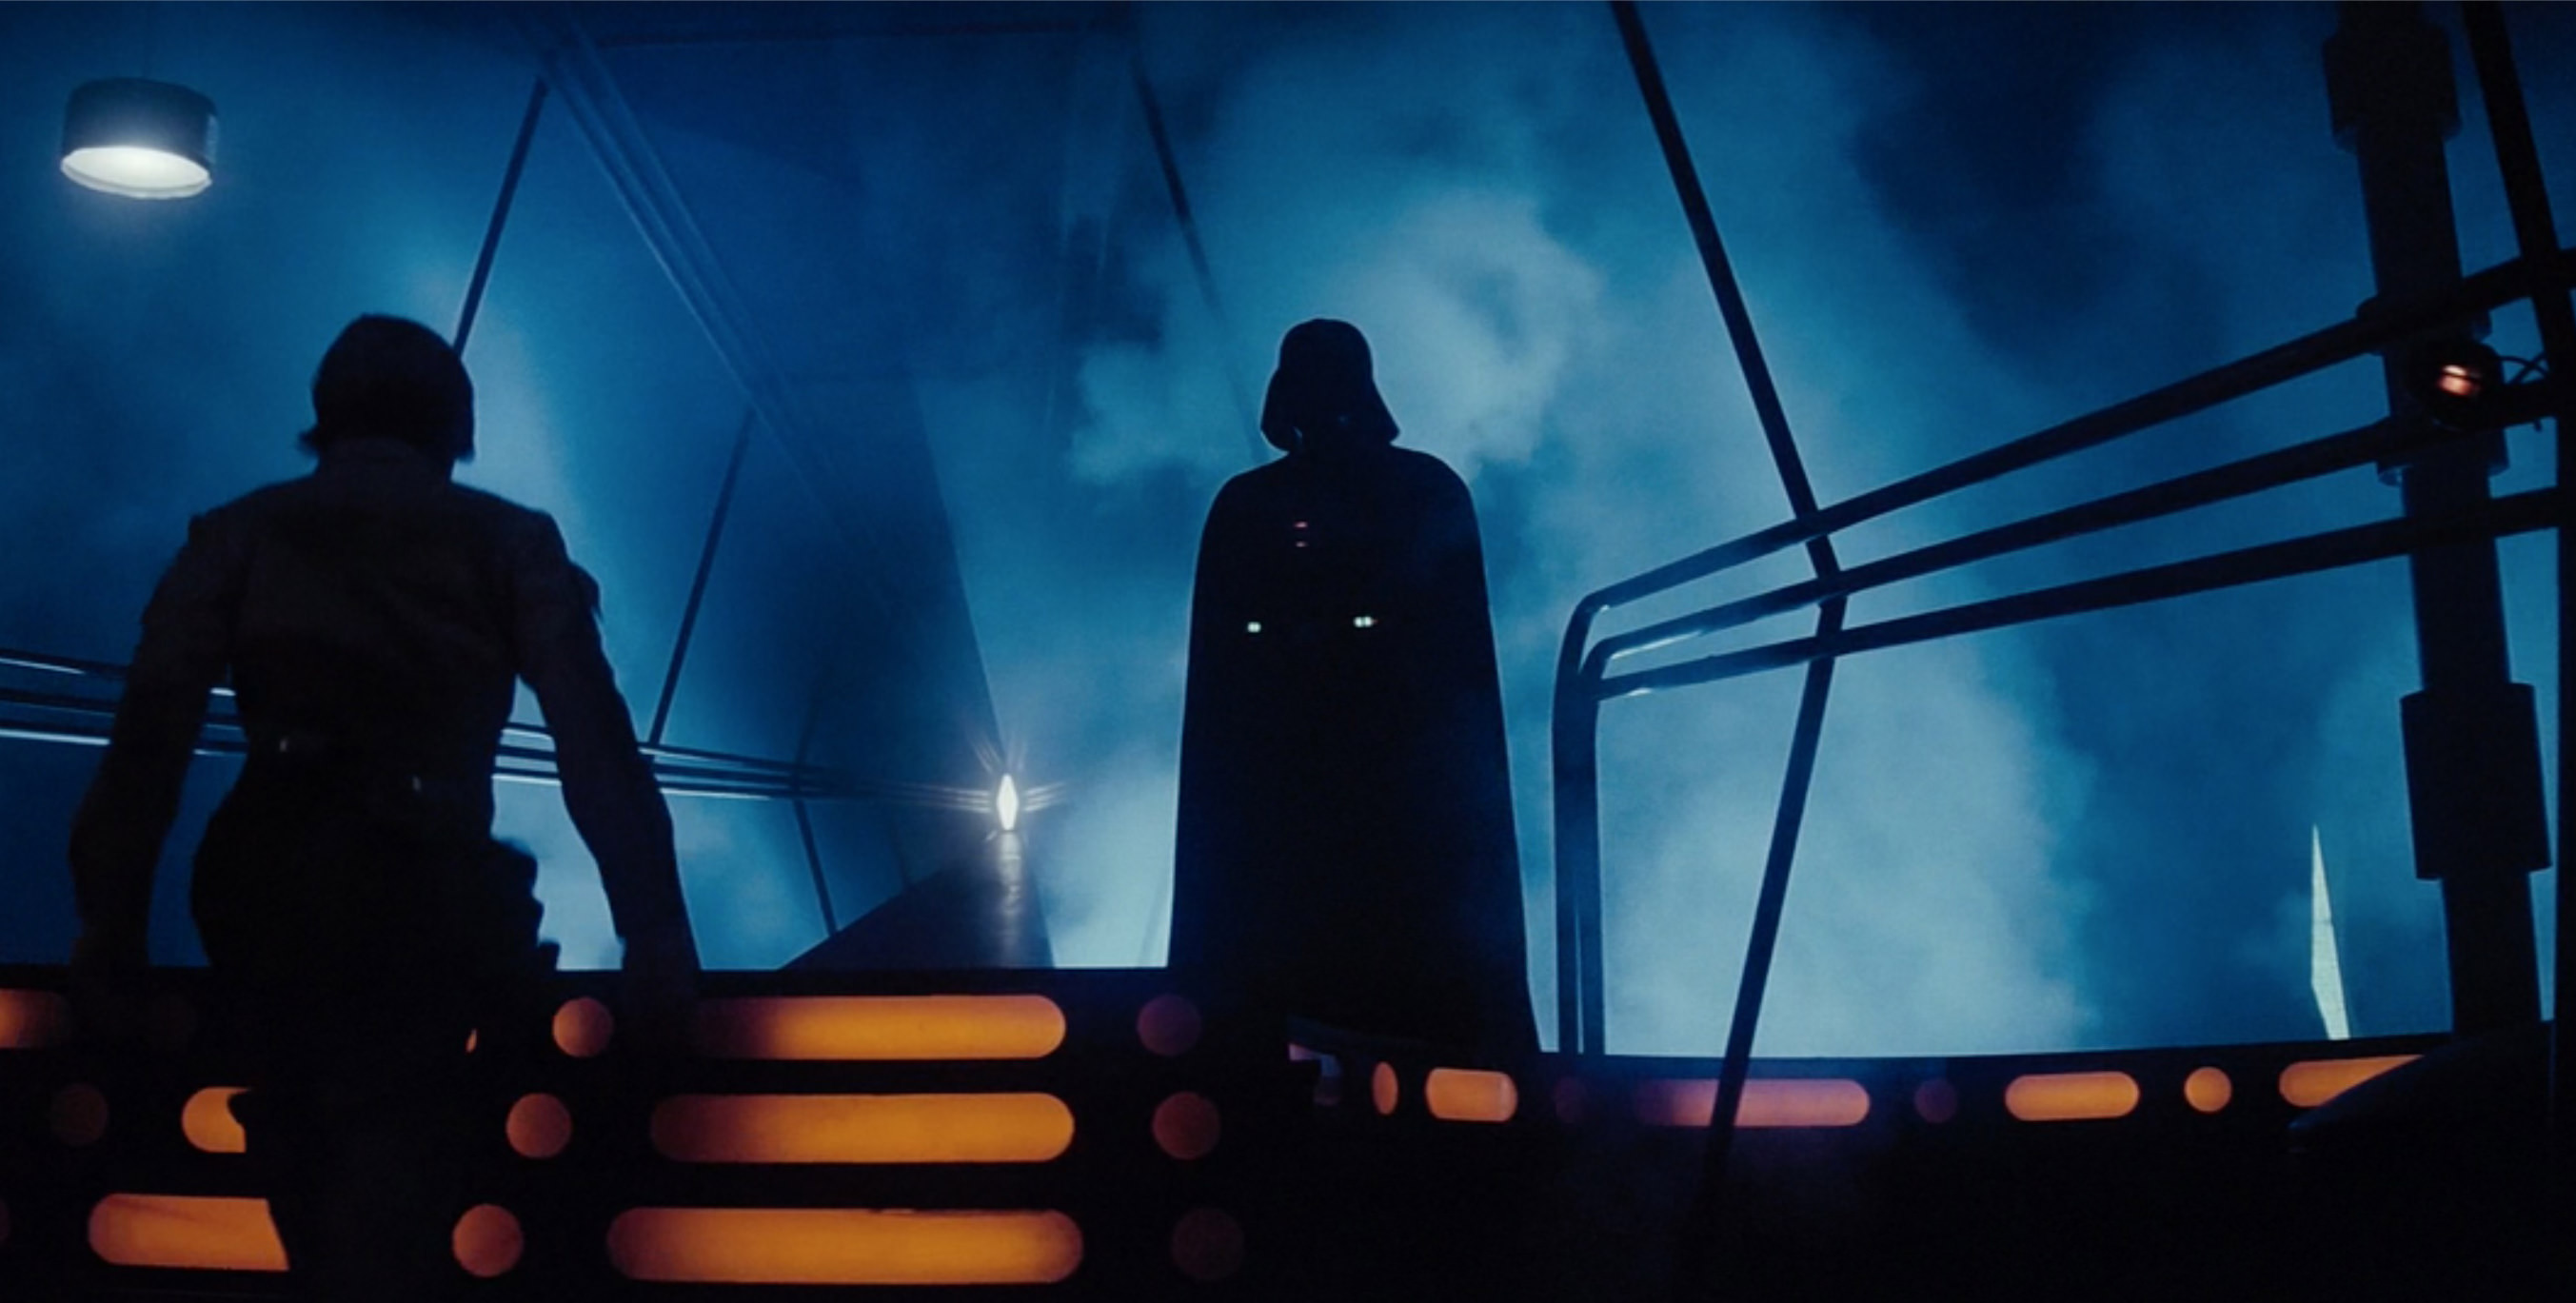 Darth Vader stands menacingly in the shadows while luke approaches to battle!